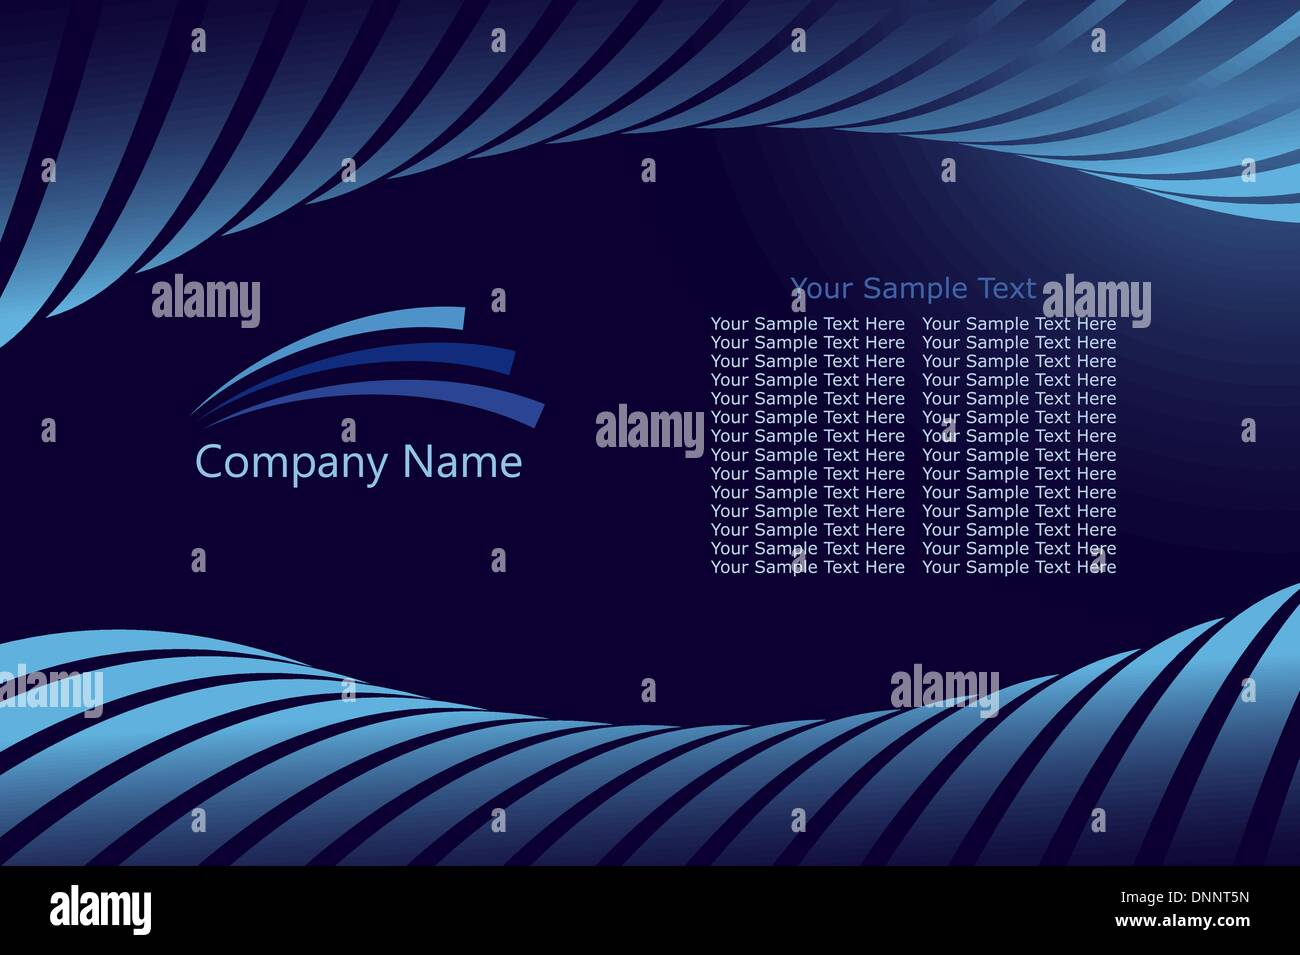 Template For Business Artworks Stock Photos & Template For Business ...